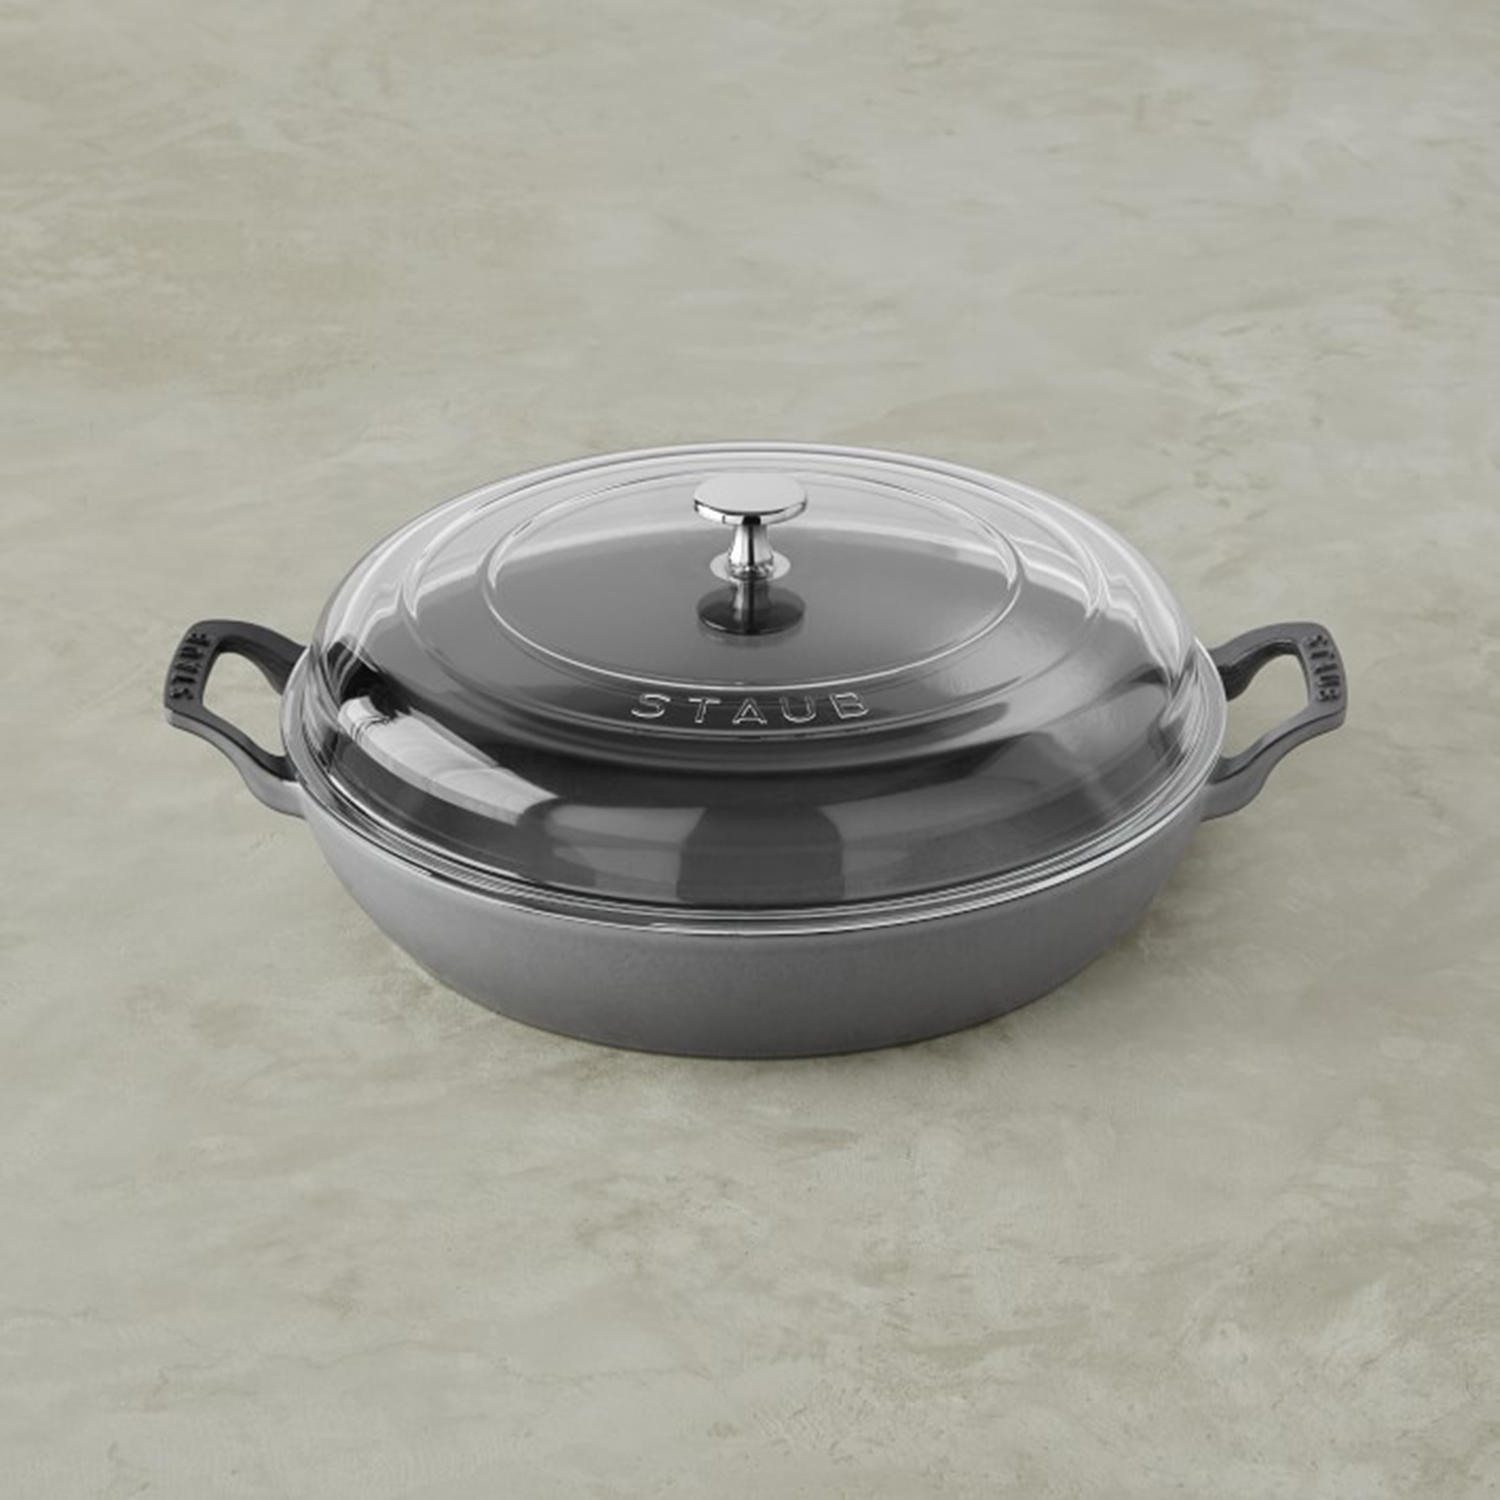 Staub Cast-Iron Everything Pan, 3 1/2-Qt., Dutch Oven